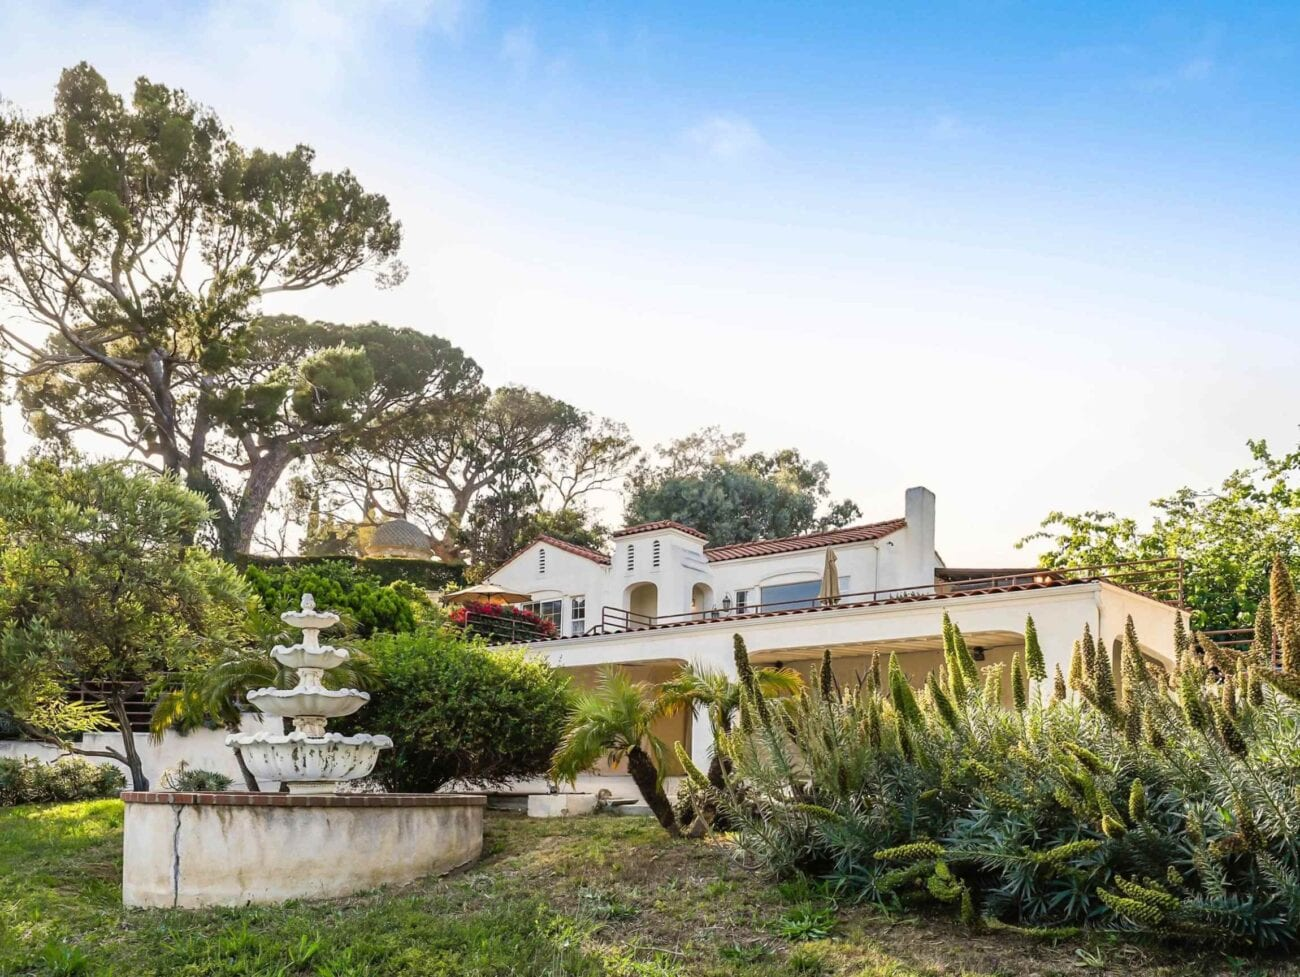 The house where Charles Manson murdered Sharon Tate is on the market. Learn about the Charles manson murders that cursed the LA home.